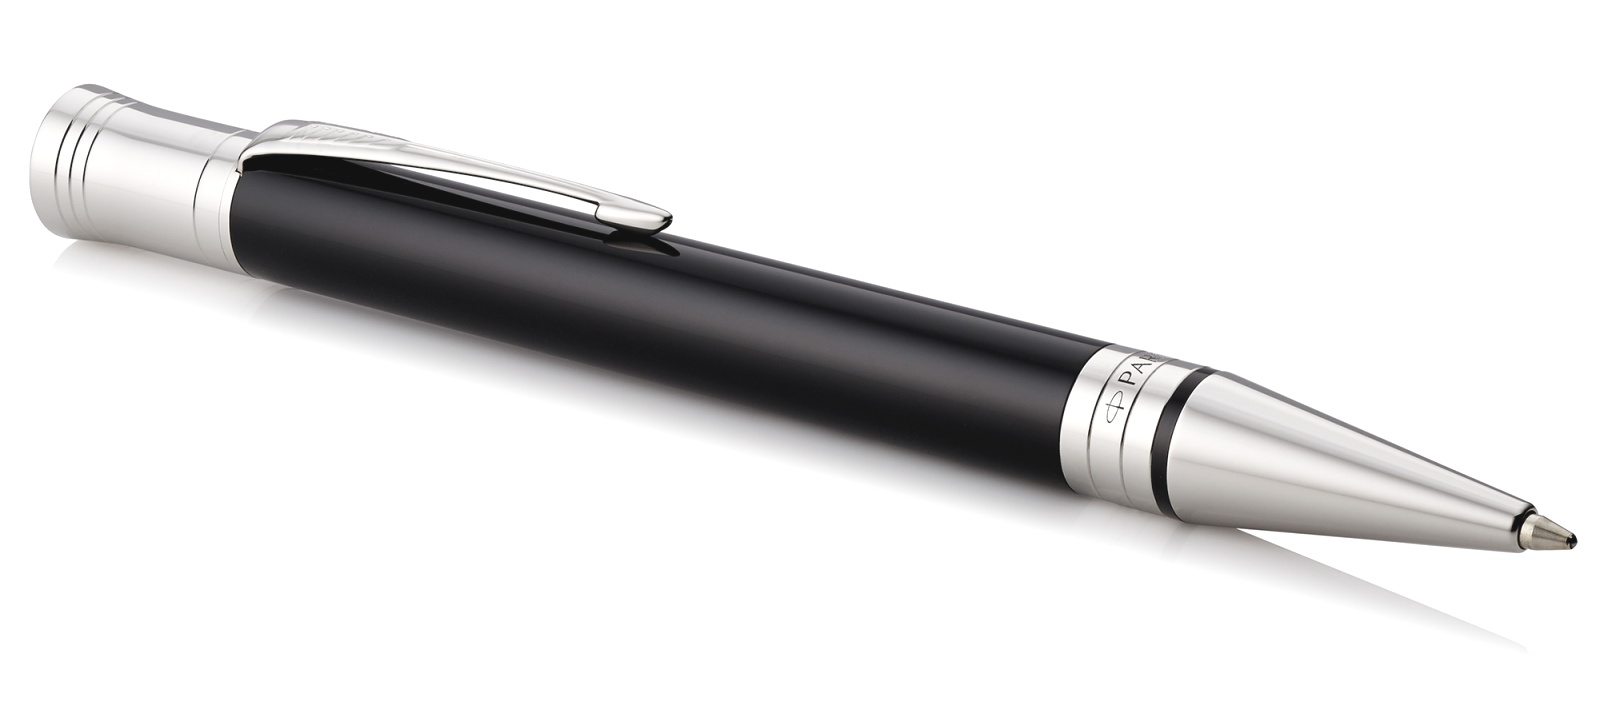 Шариковая ручка Parker Duofold Classic International K74, Black CT, фото 2